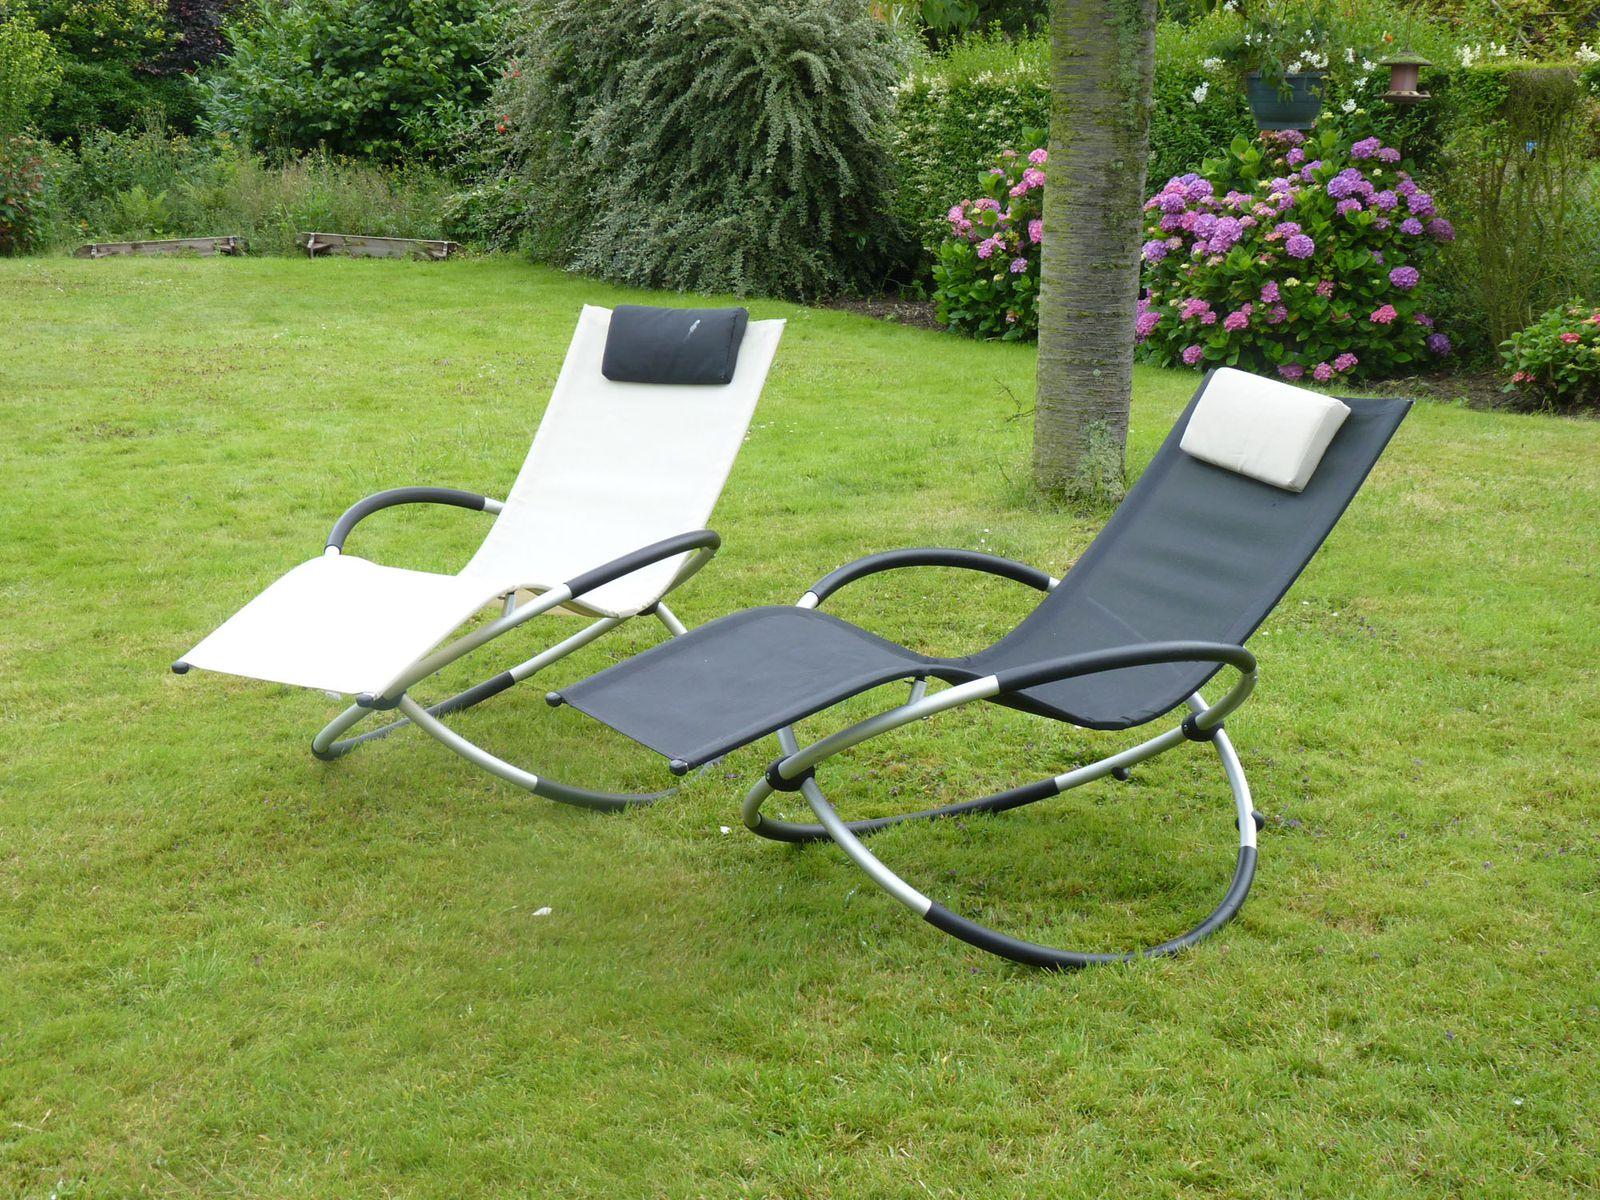 jardin fauteuil relax design confortable qu 39 un transat bain de soleil rocking chair d tente. Black Bedroom Furniture Sets. Home Design Ideas